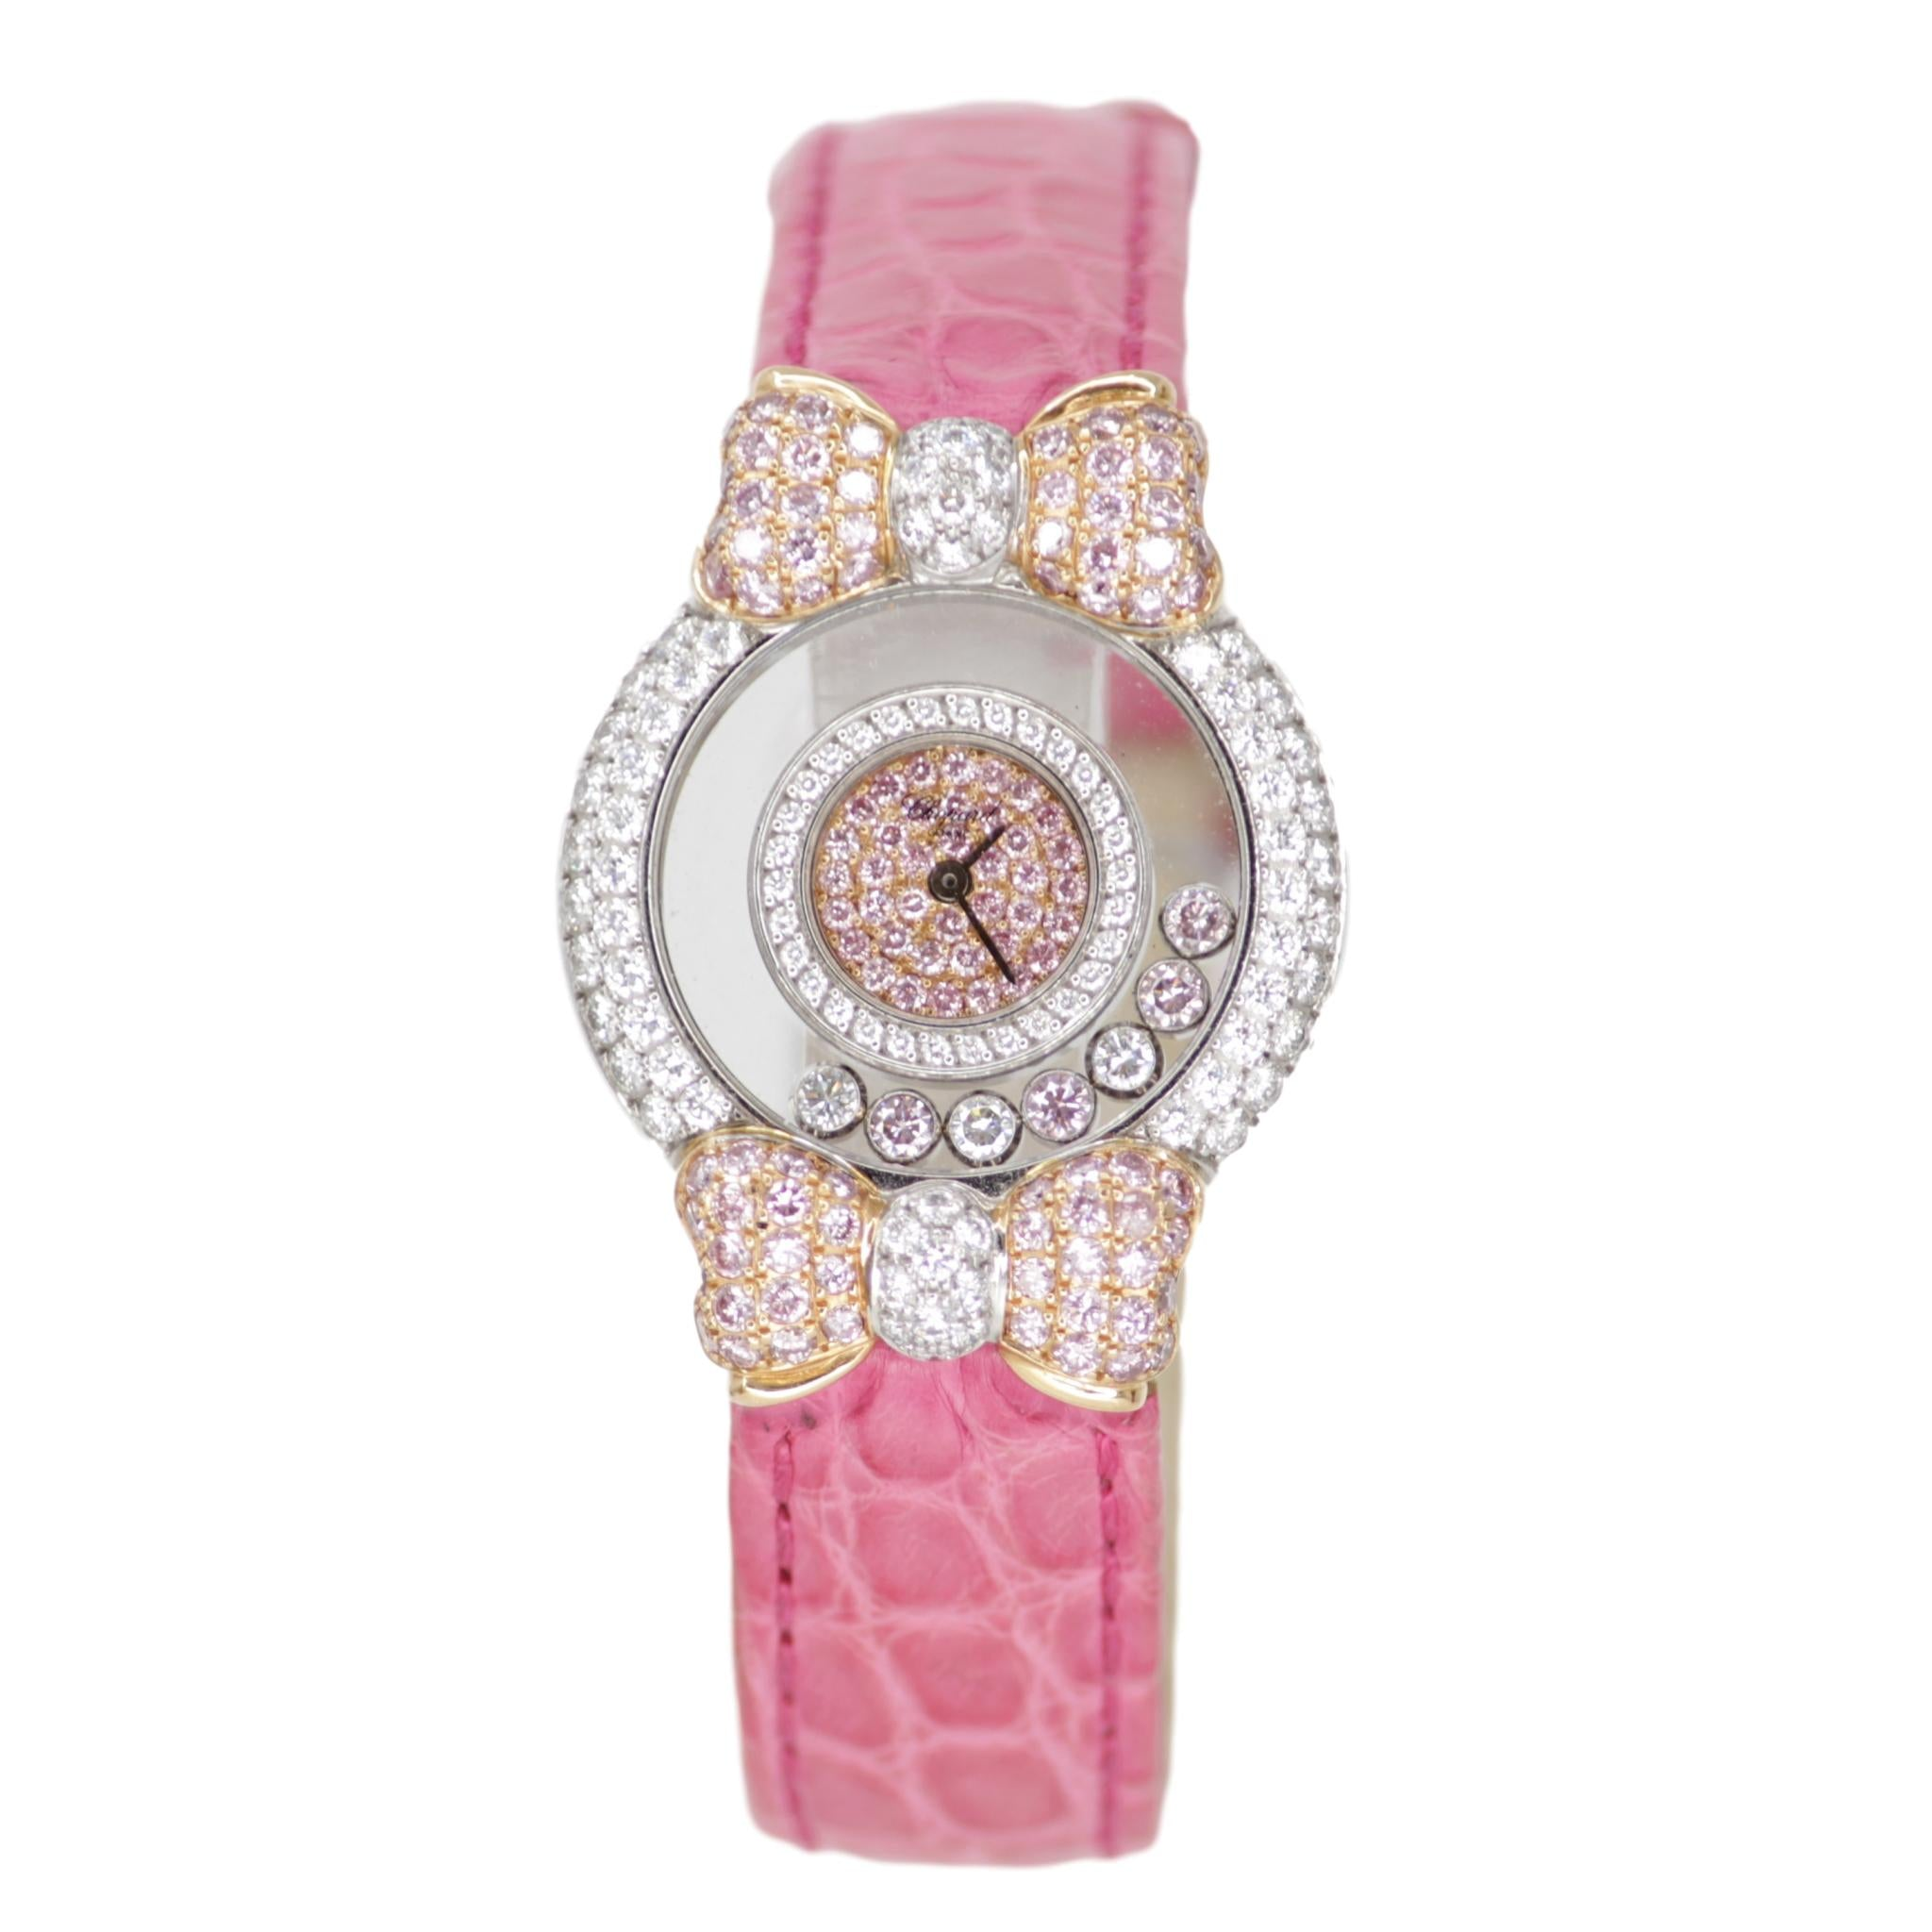 "Chopard 18k White Gold White and Pink Diamond Rare ""Happy Diamonds"" Pink Hello Kitty Ladies Watch with Bows"